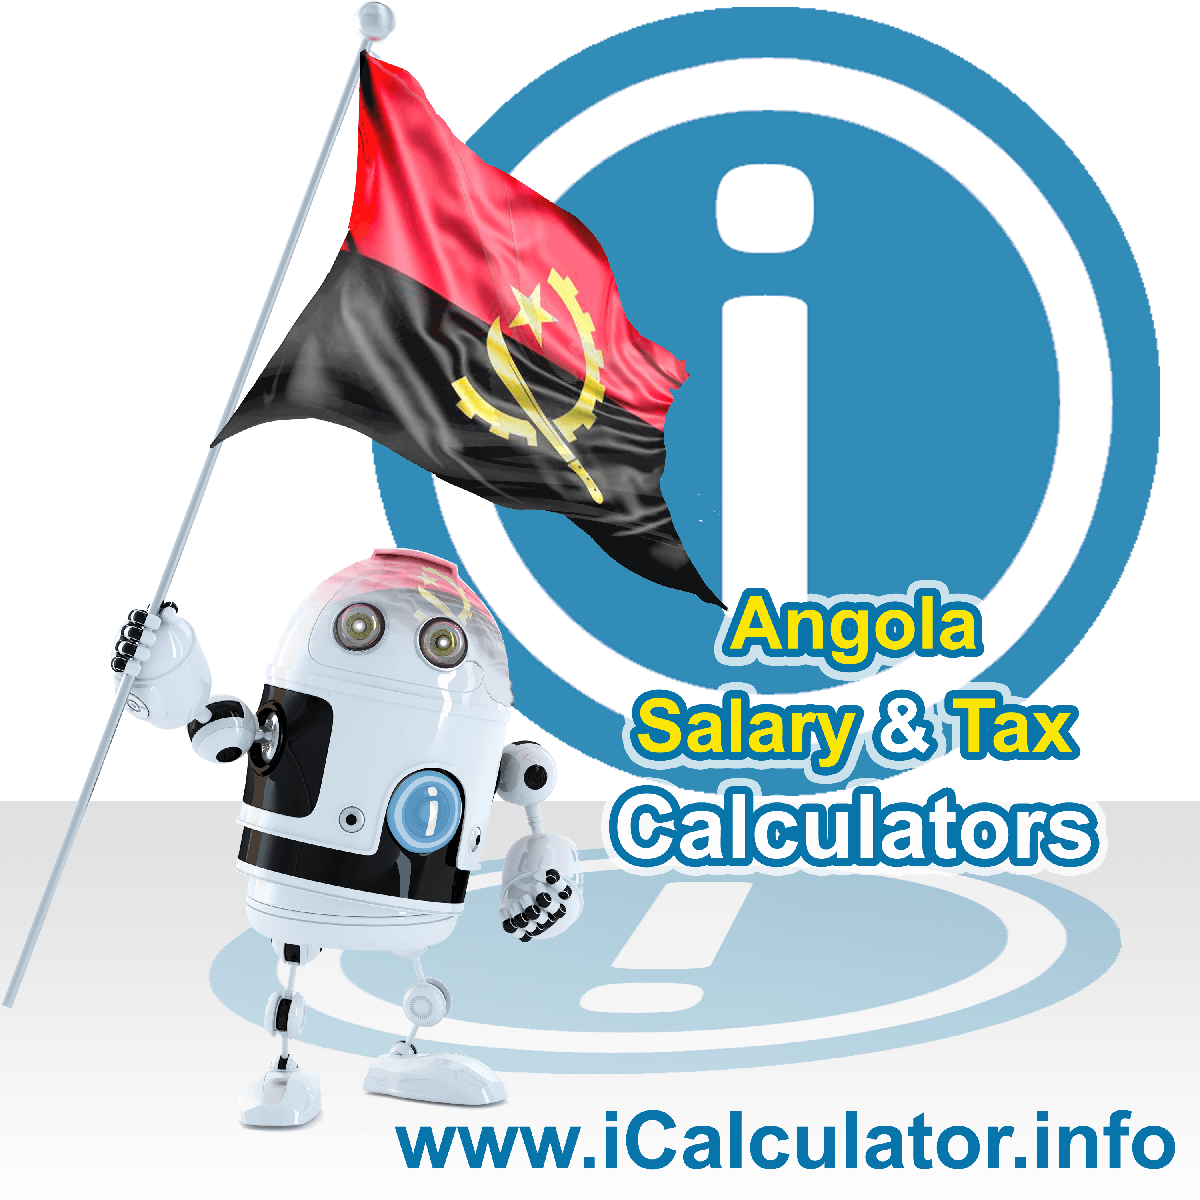 Angola Wage Calculator. This image shows the Angola flag and information relating to the tax formula for the Angola Tax Calculator